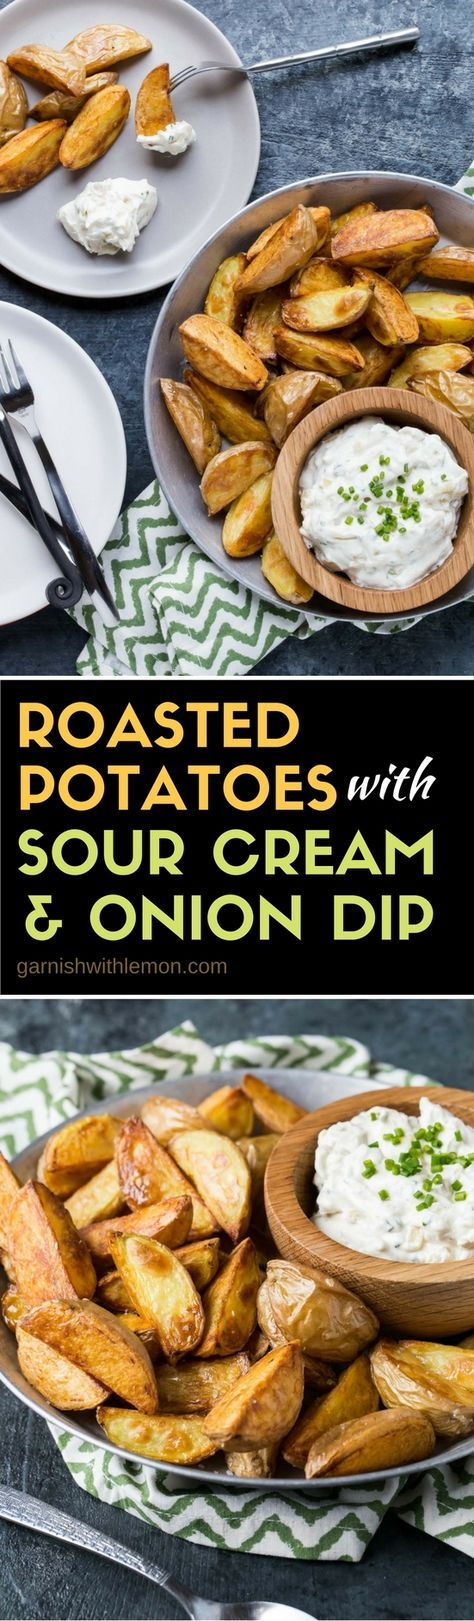 Potatoes are not just for dinner! These Roasted Potatoes with Sour Cream and Onion Dip make a simple, crowd-pleasing appetizer, too.